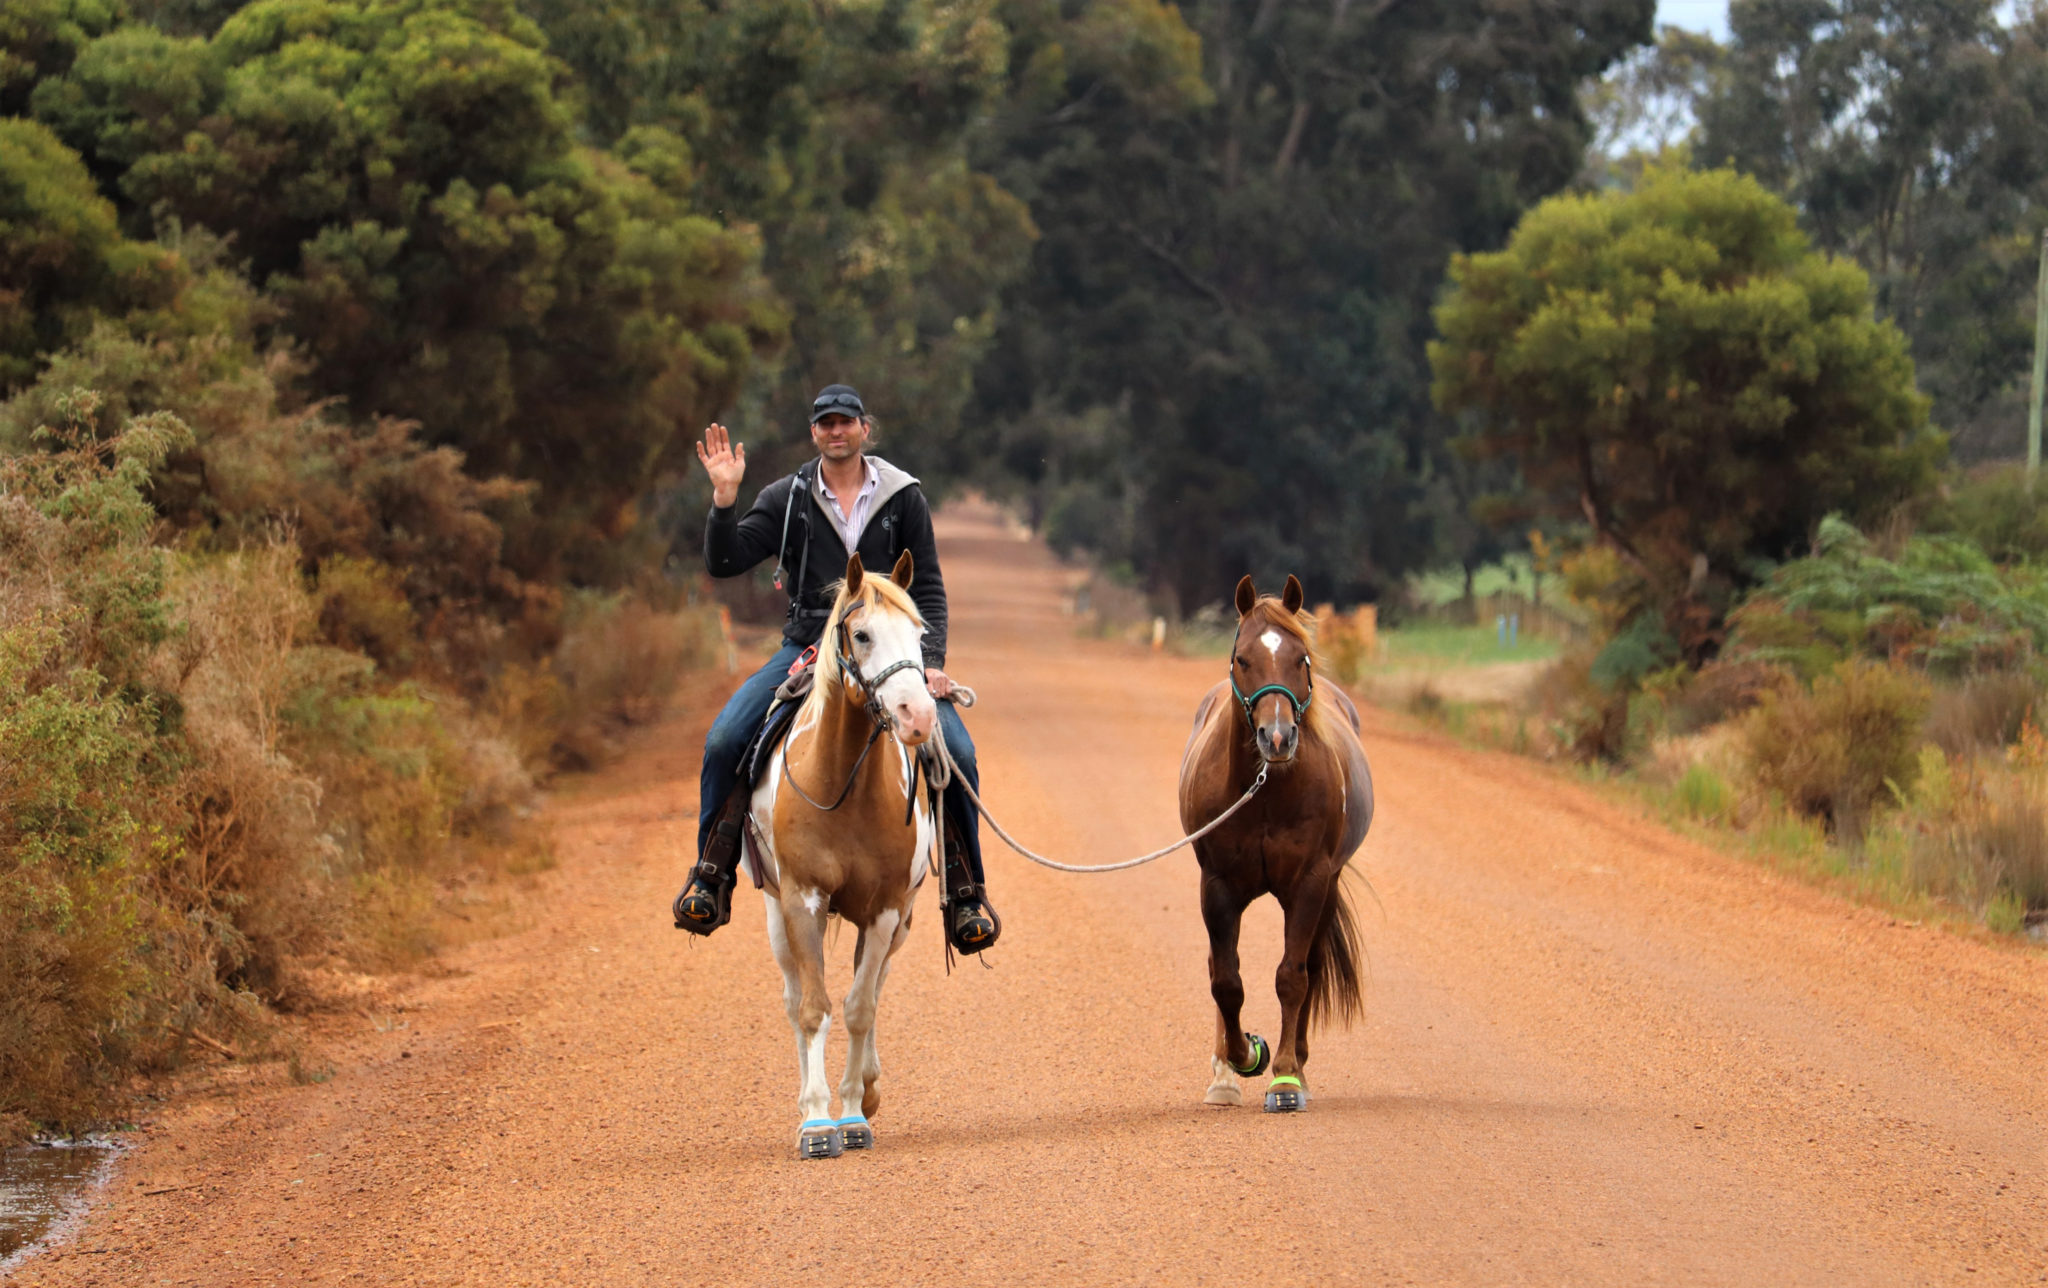 Tales of the Trail: an epic ride around Australia - Globetrotting horse riding holidays